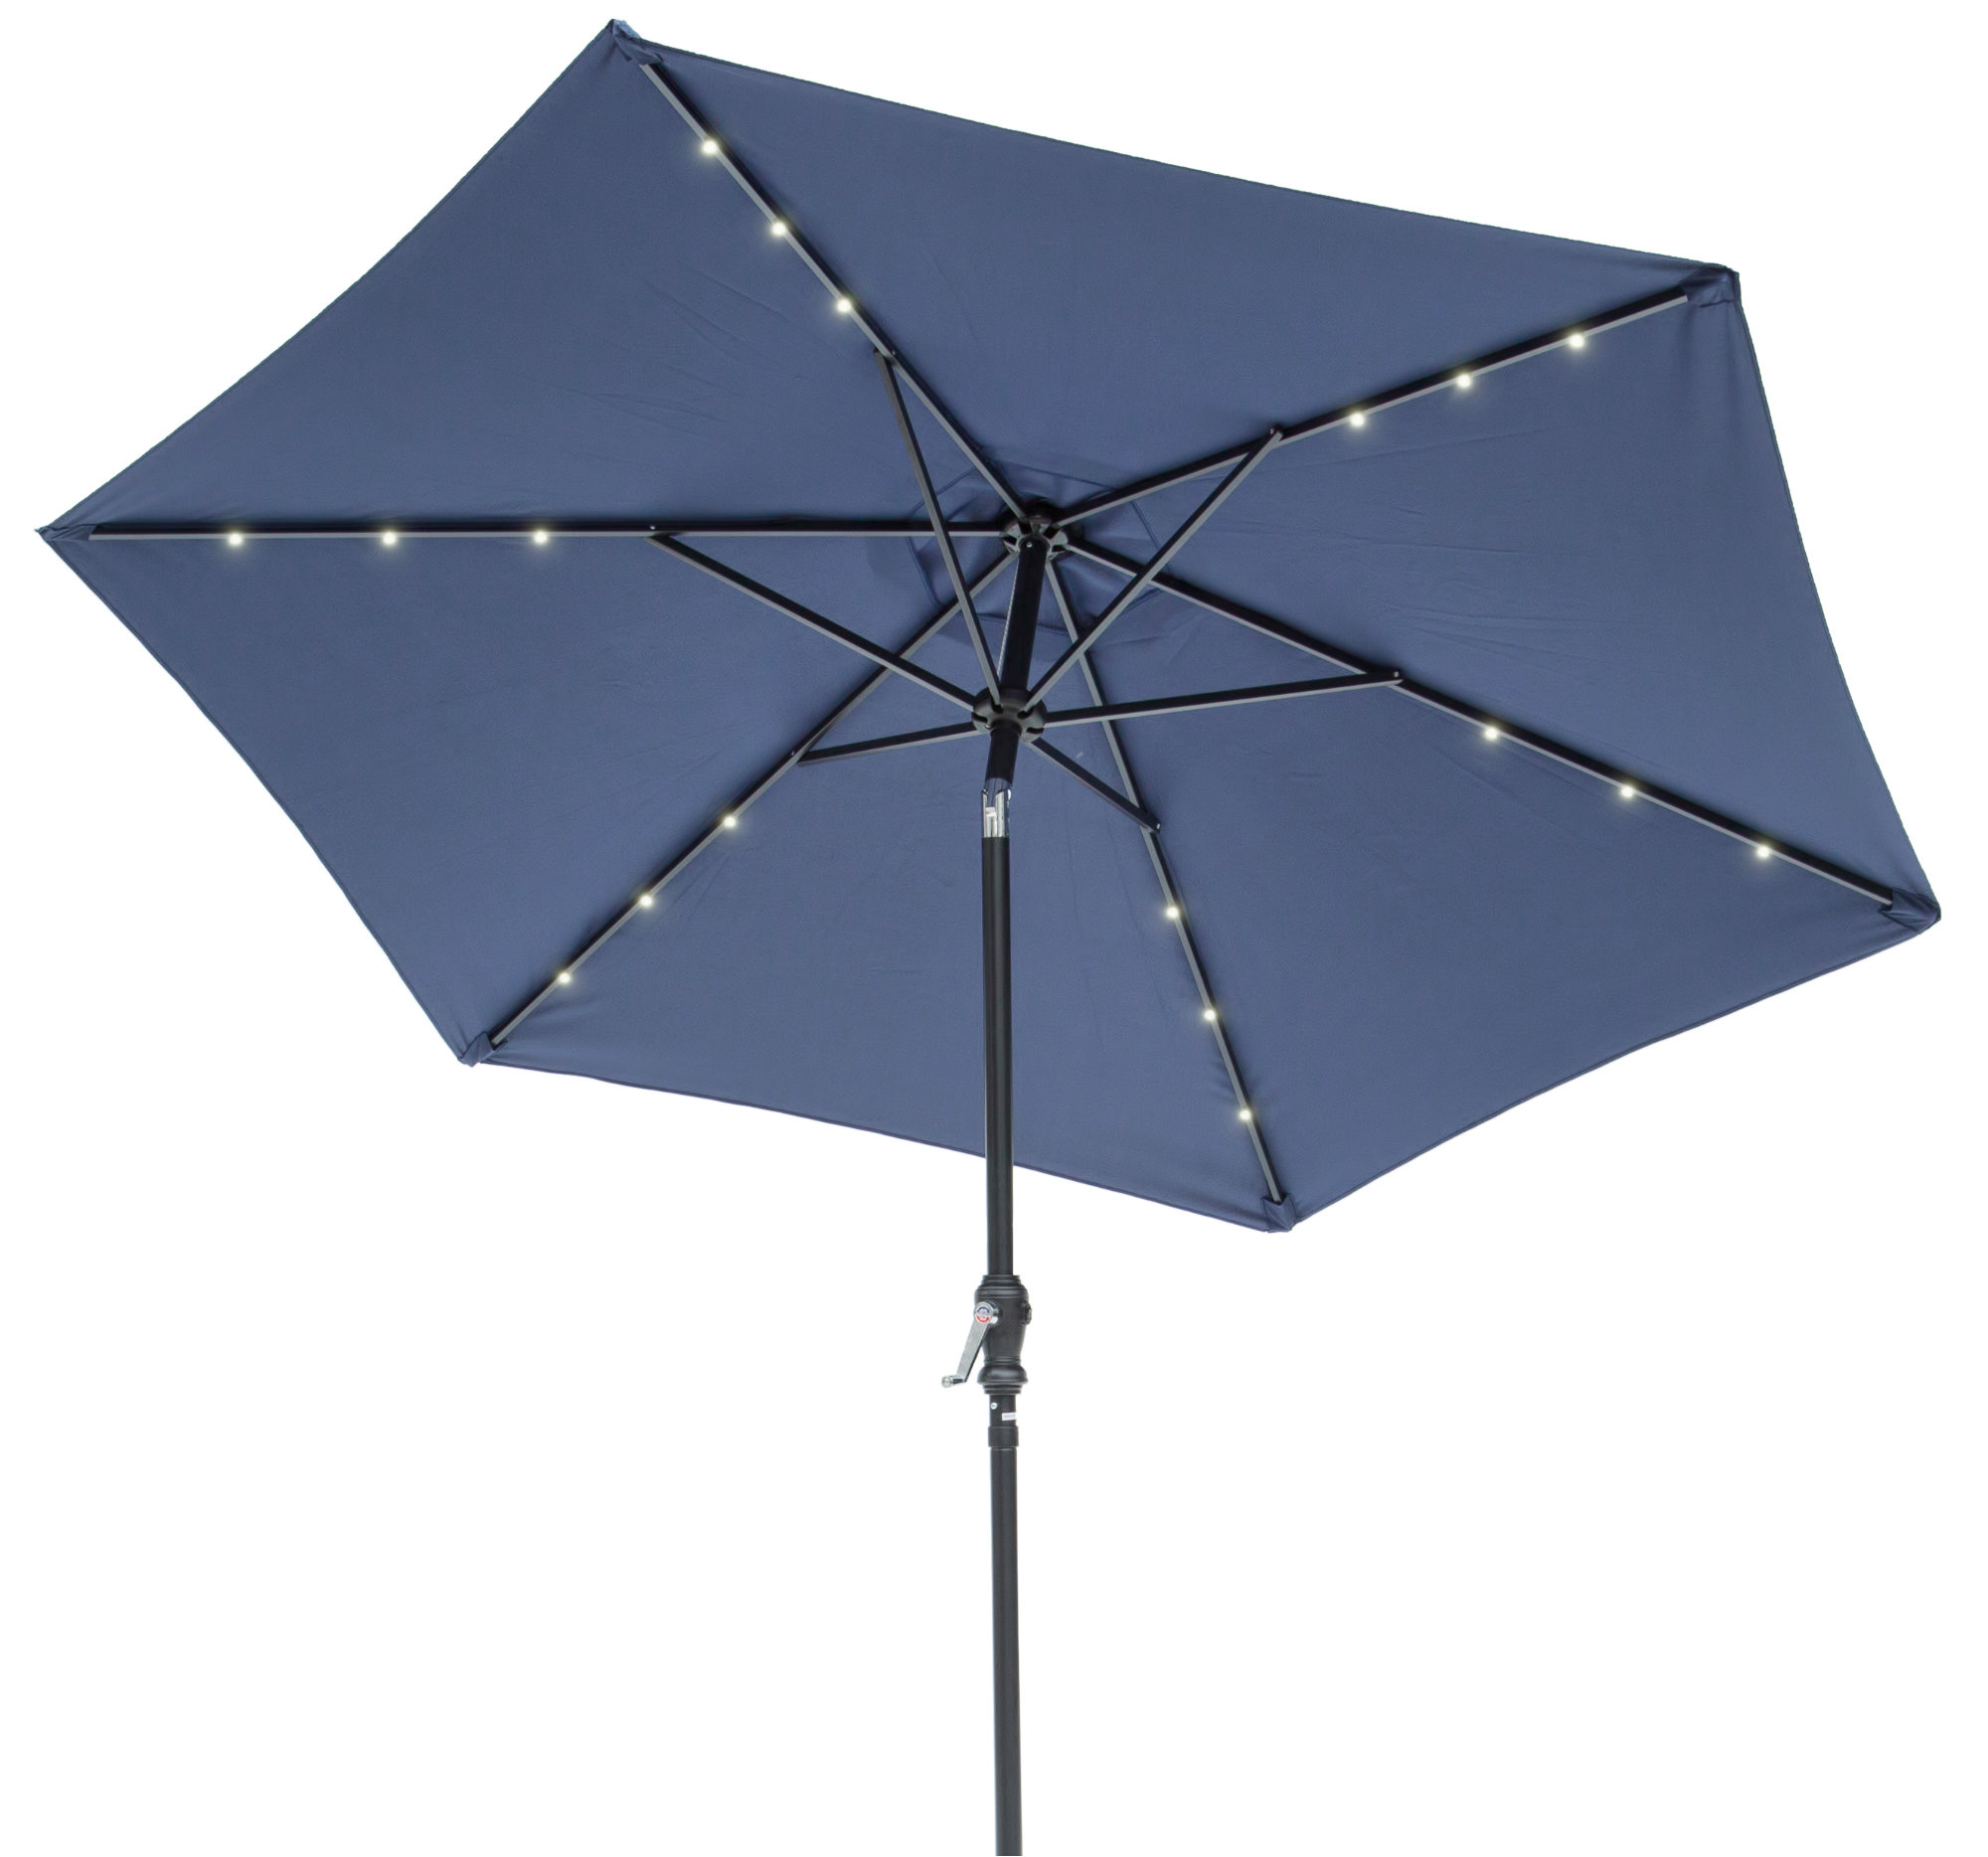 Branscum Lighted Umbrellas Pertaining To Most Recently Released Herlinda Solar Lighted 9' Market Umbrella (View 3 of 20)